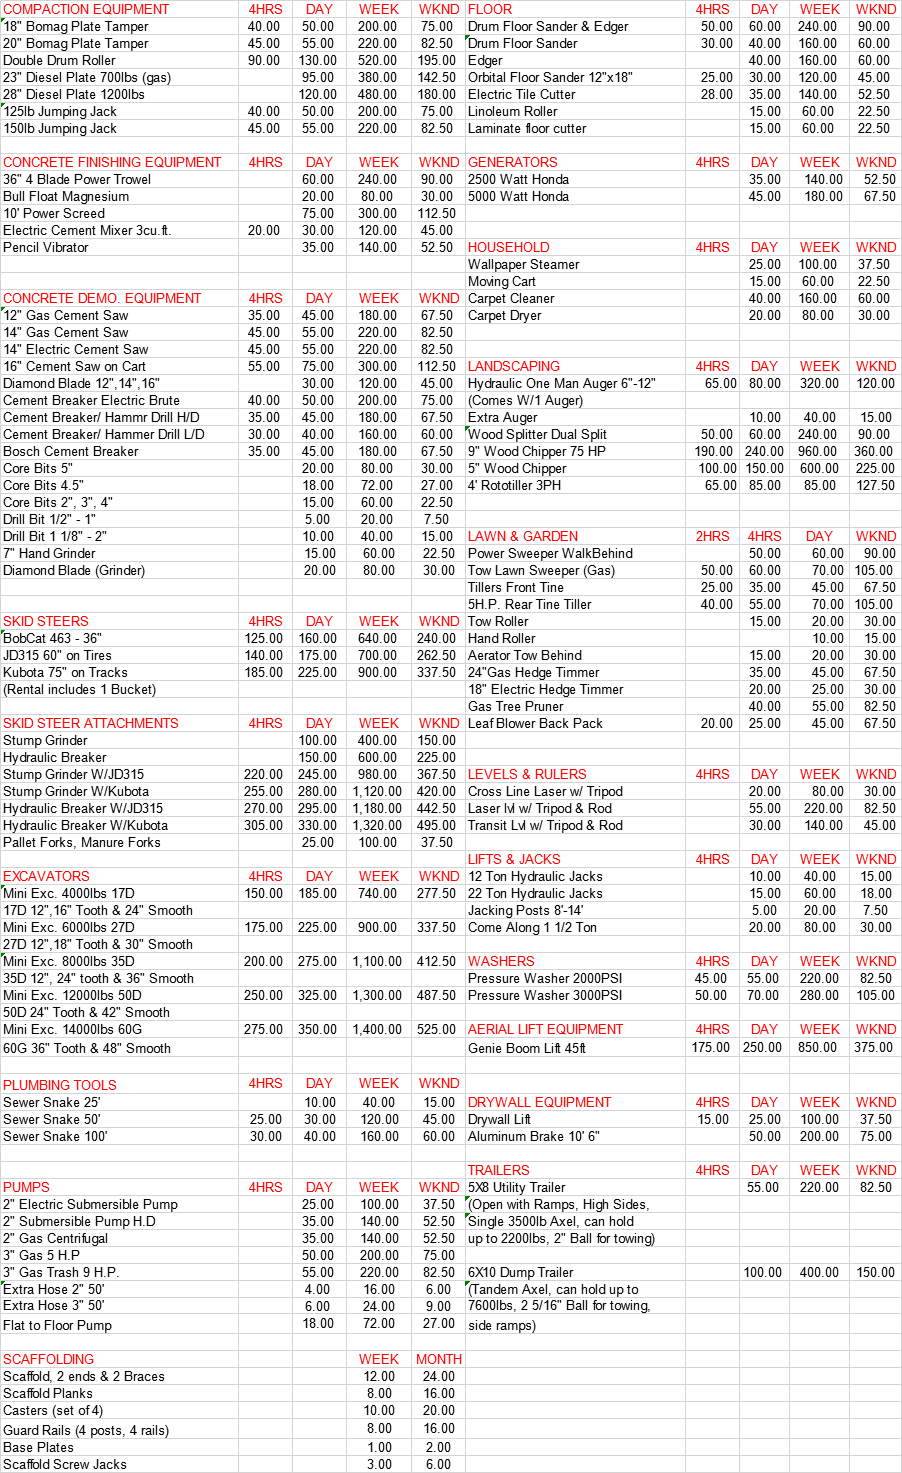 Whole pricelist.png